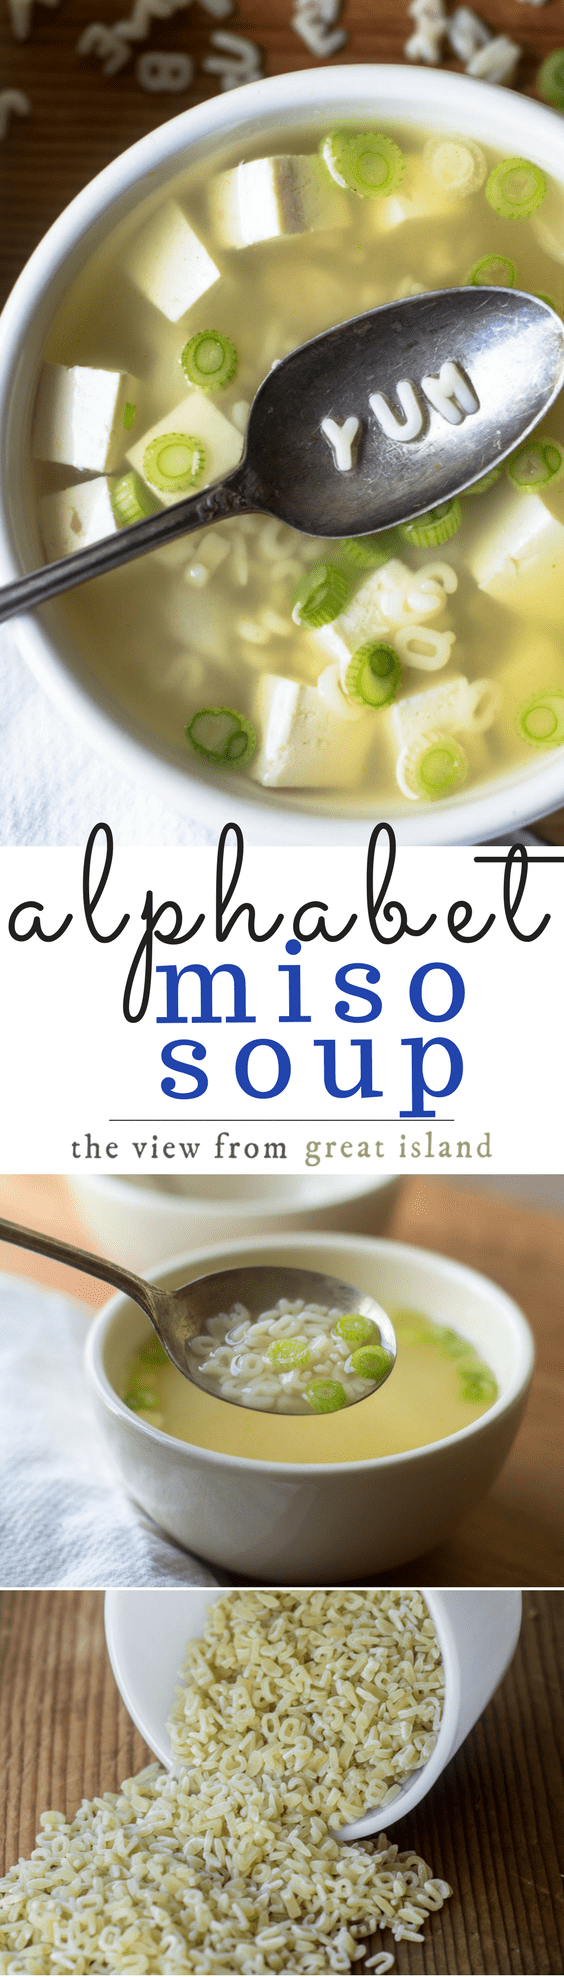 Miso Alphabet Soup ~ healthy, easy, and fun Miso Alphabet Soup is a 15 minute meal that introduces kids of all ages to a classic Japanese dish. #japanese #healthy #noodlesoup #misosoup #lunch #kidslunch #healthylunch #alphabetsoup #bestmisosoup #misorecipe #lowcalorie #30minutemeal #soup #miso #misopaste